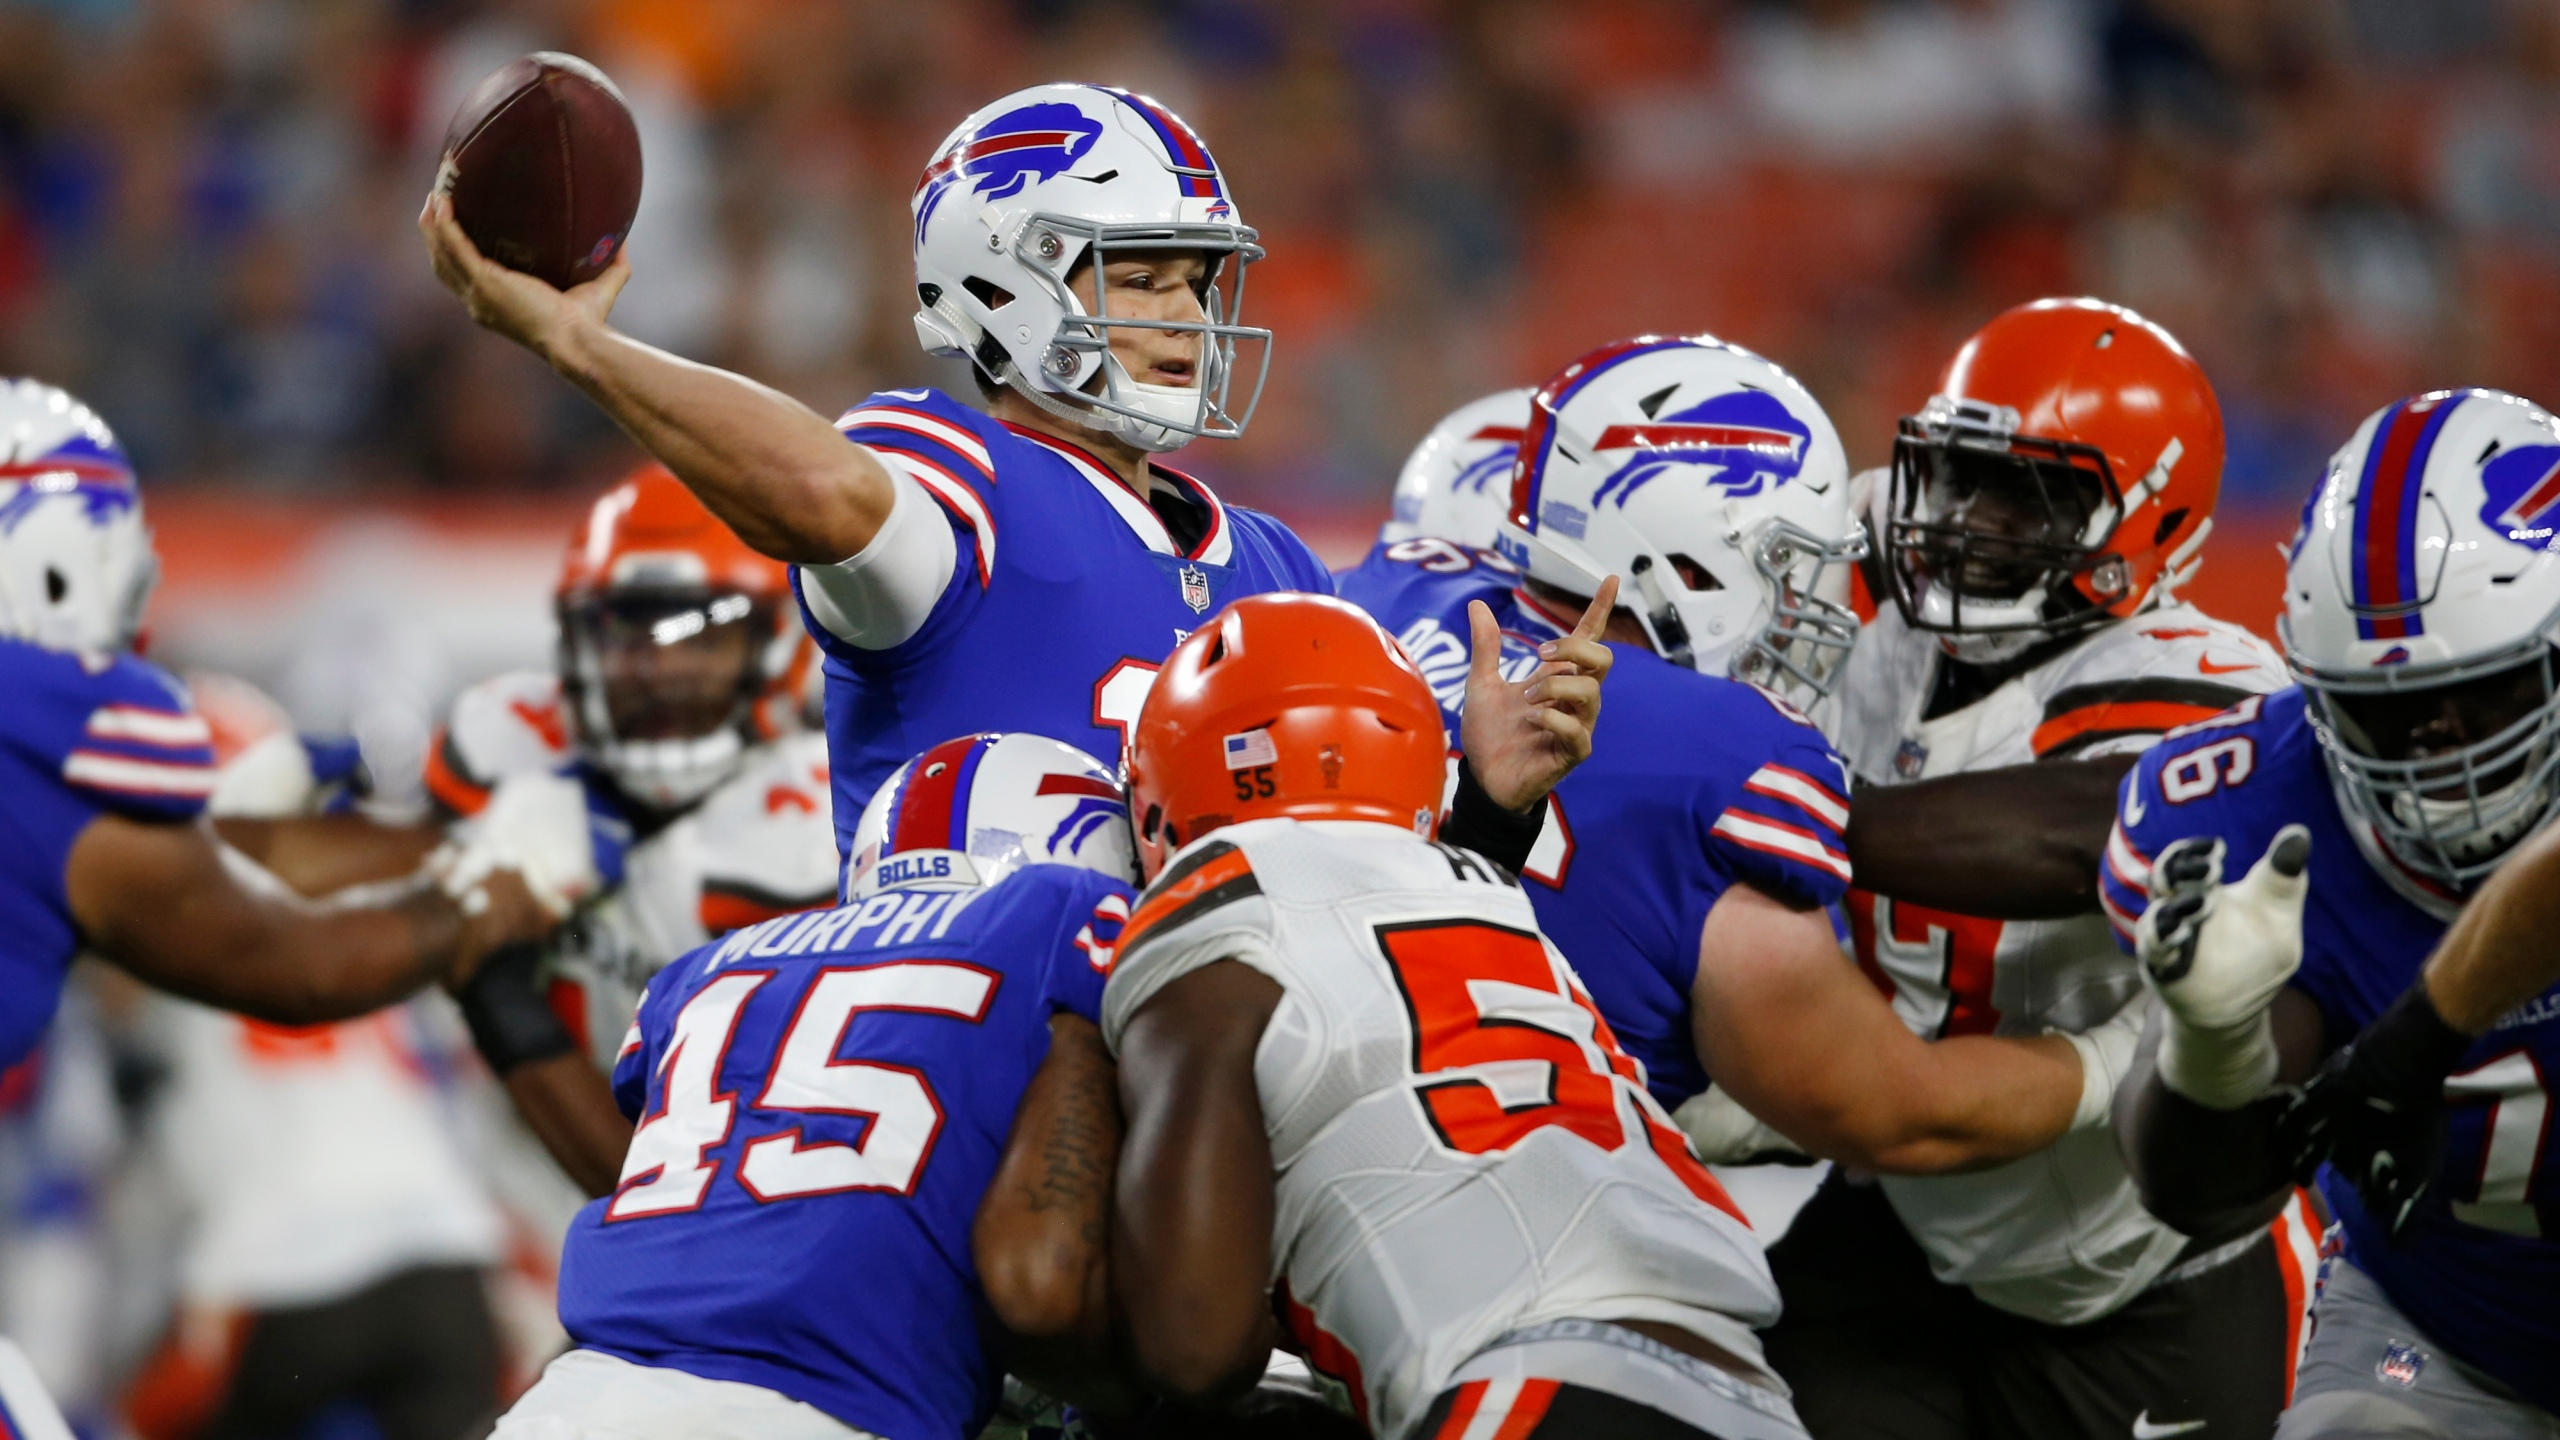 Bills Browns Football_1535646335842